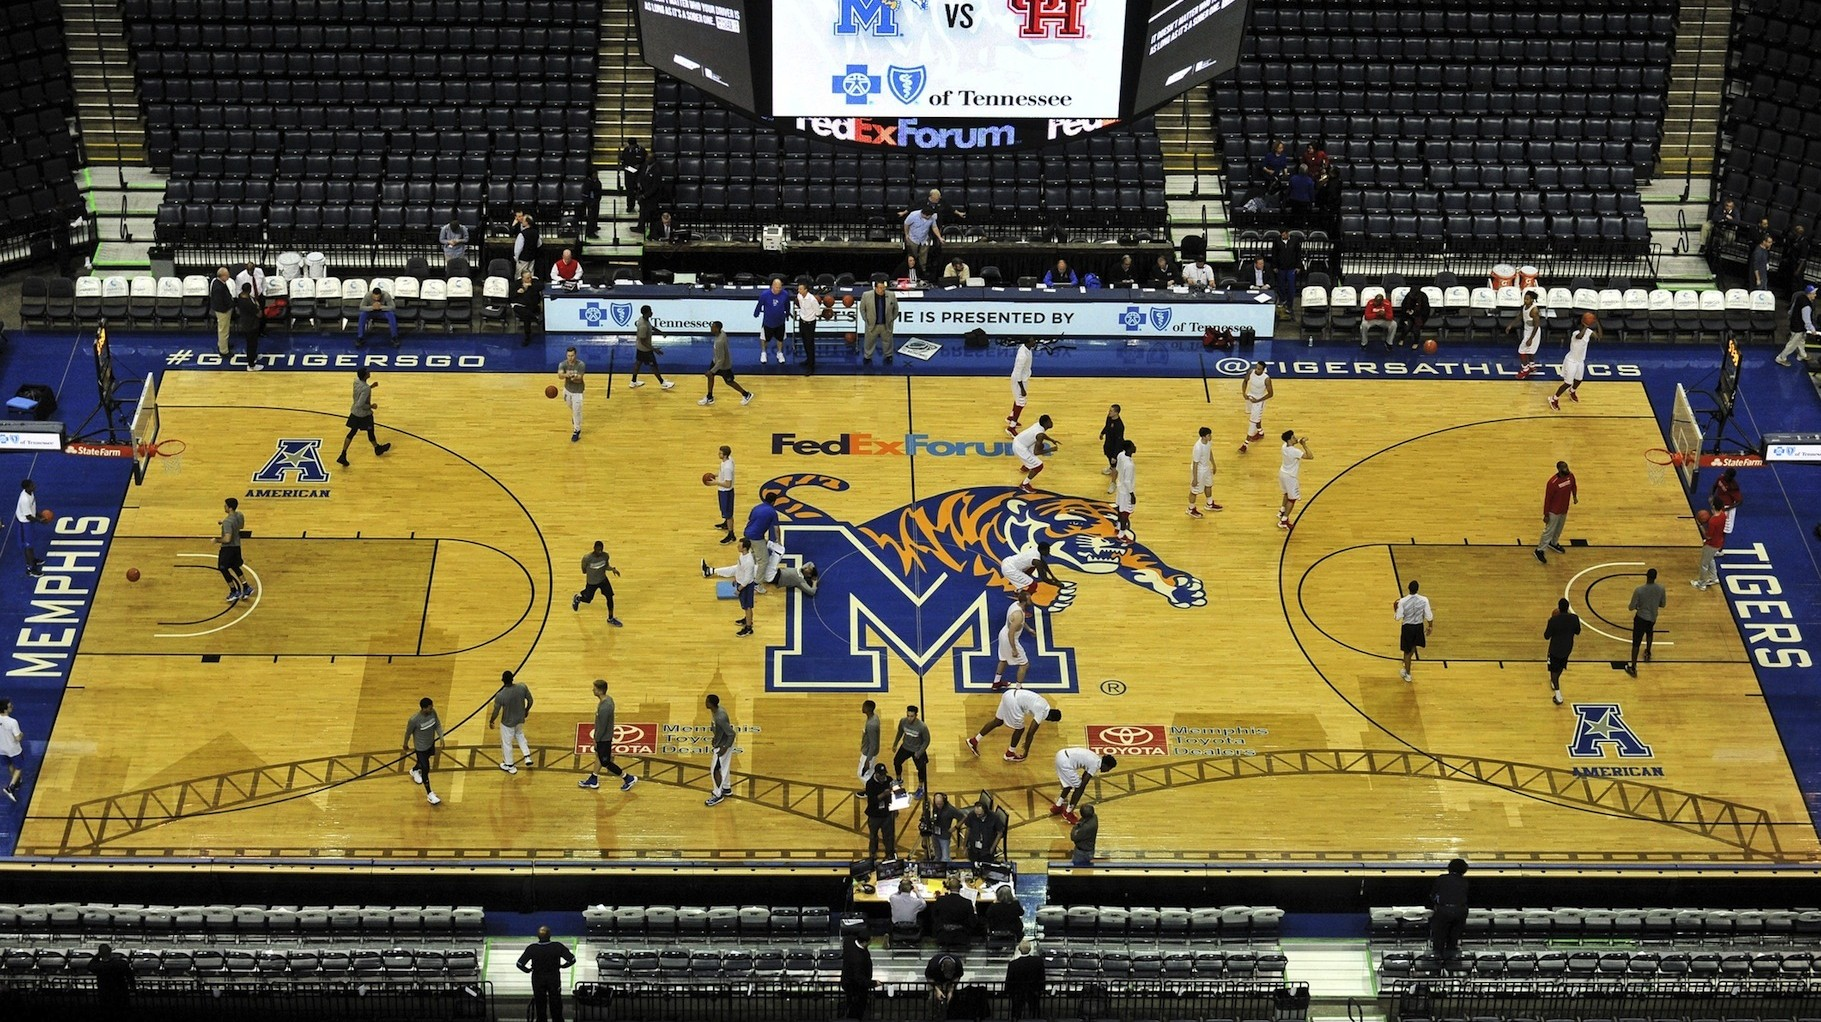 For Tigers Fans, Memphis Playing NCAA Tournament Host Is Salt in an Open Wound